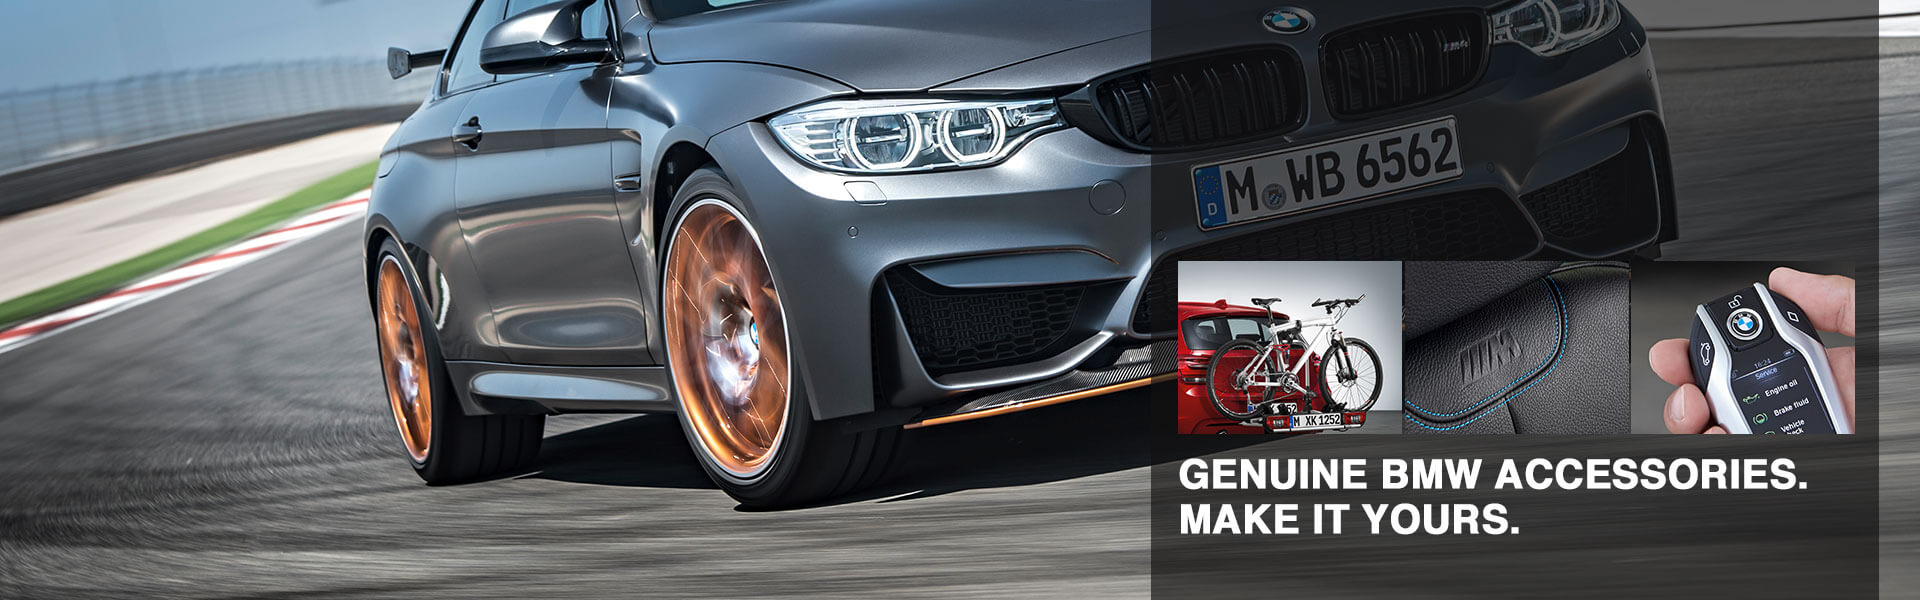 Genuine BMW Accessories